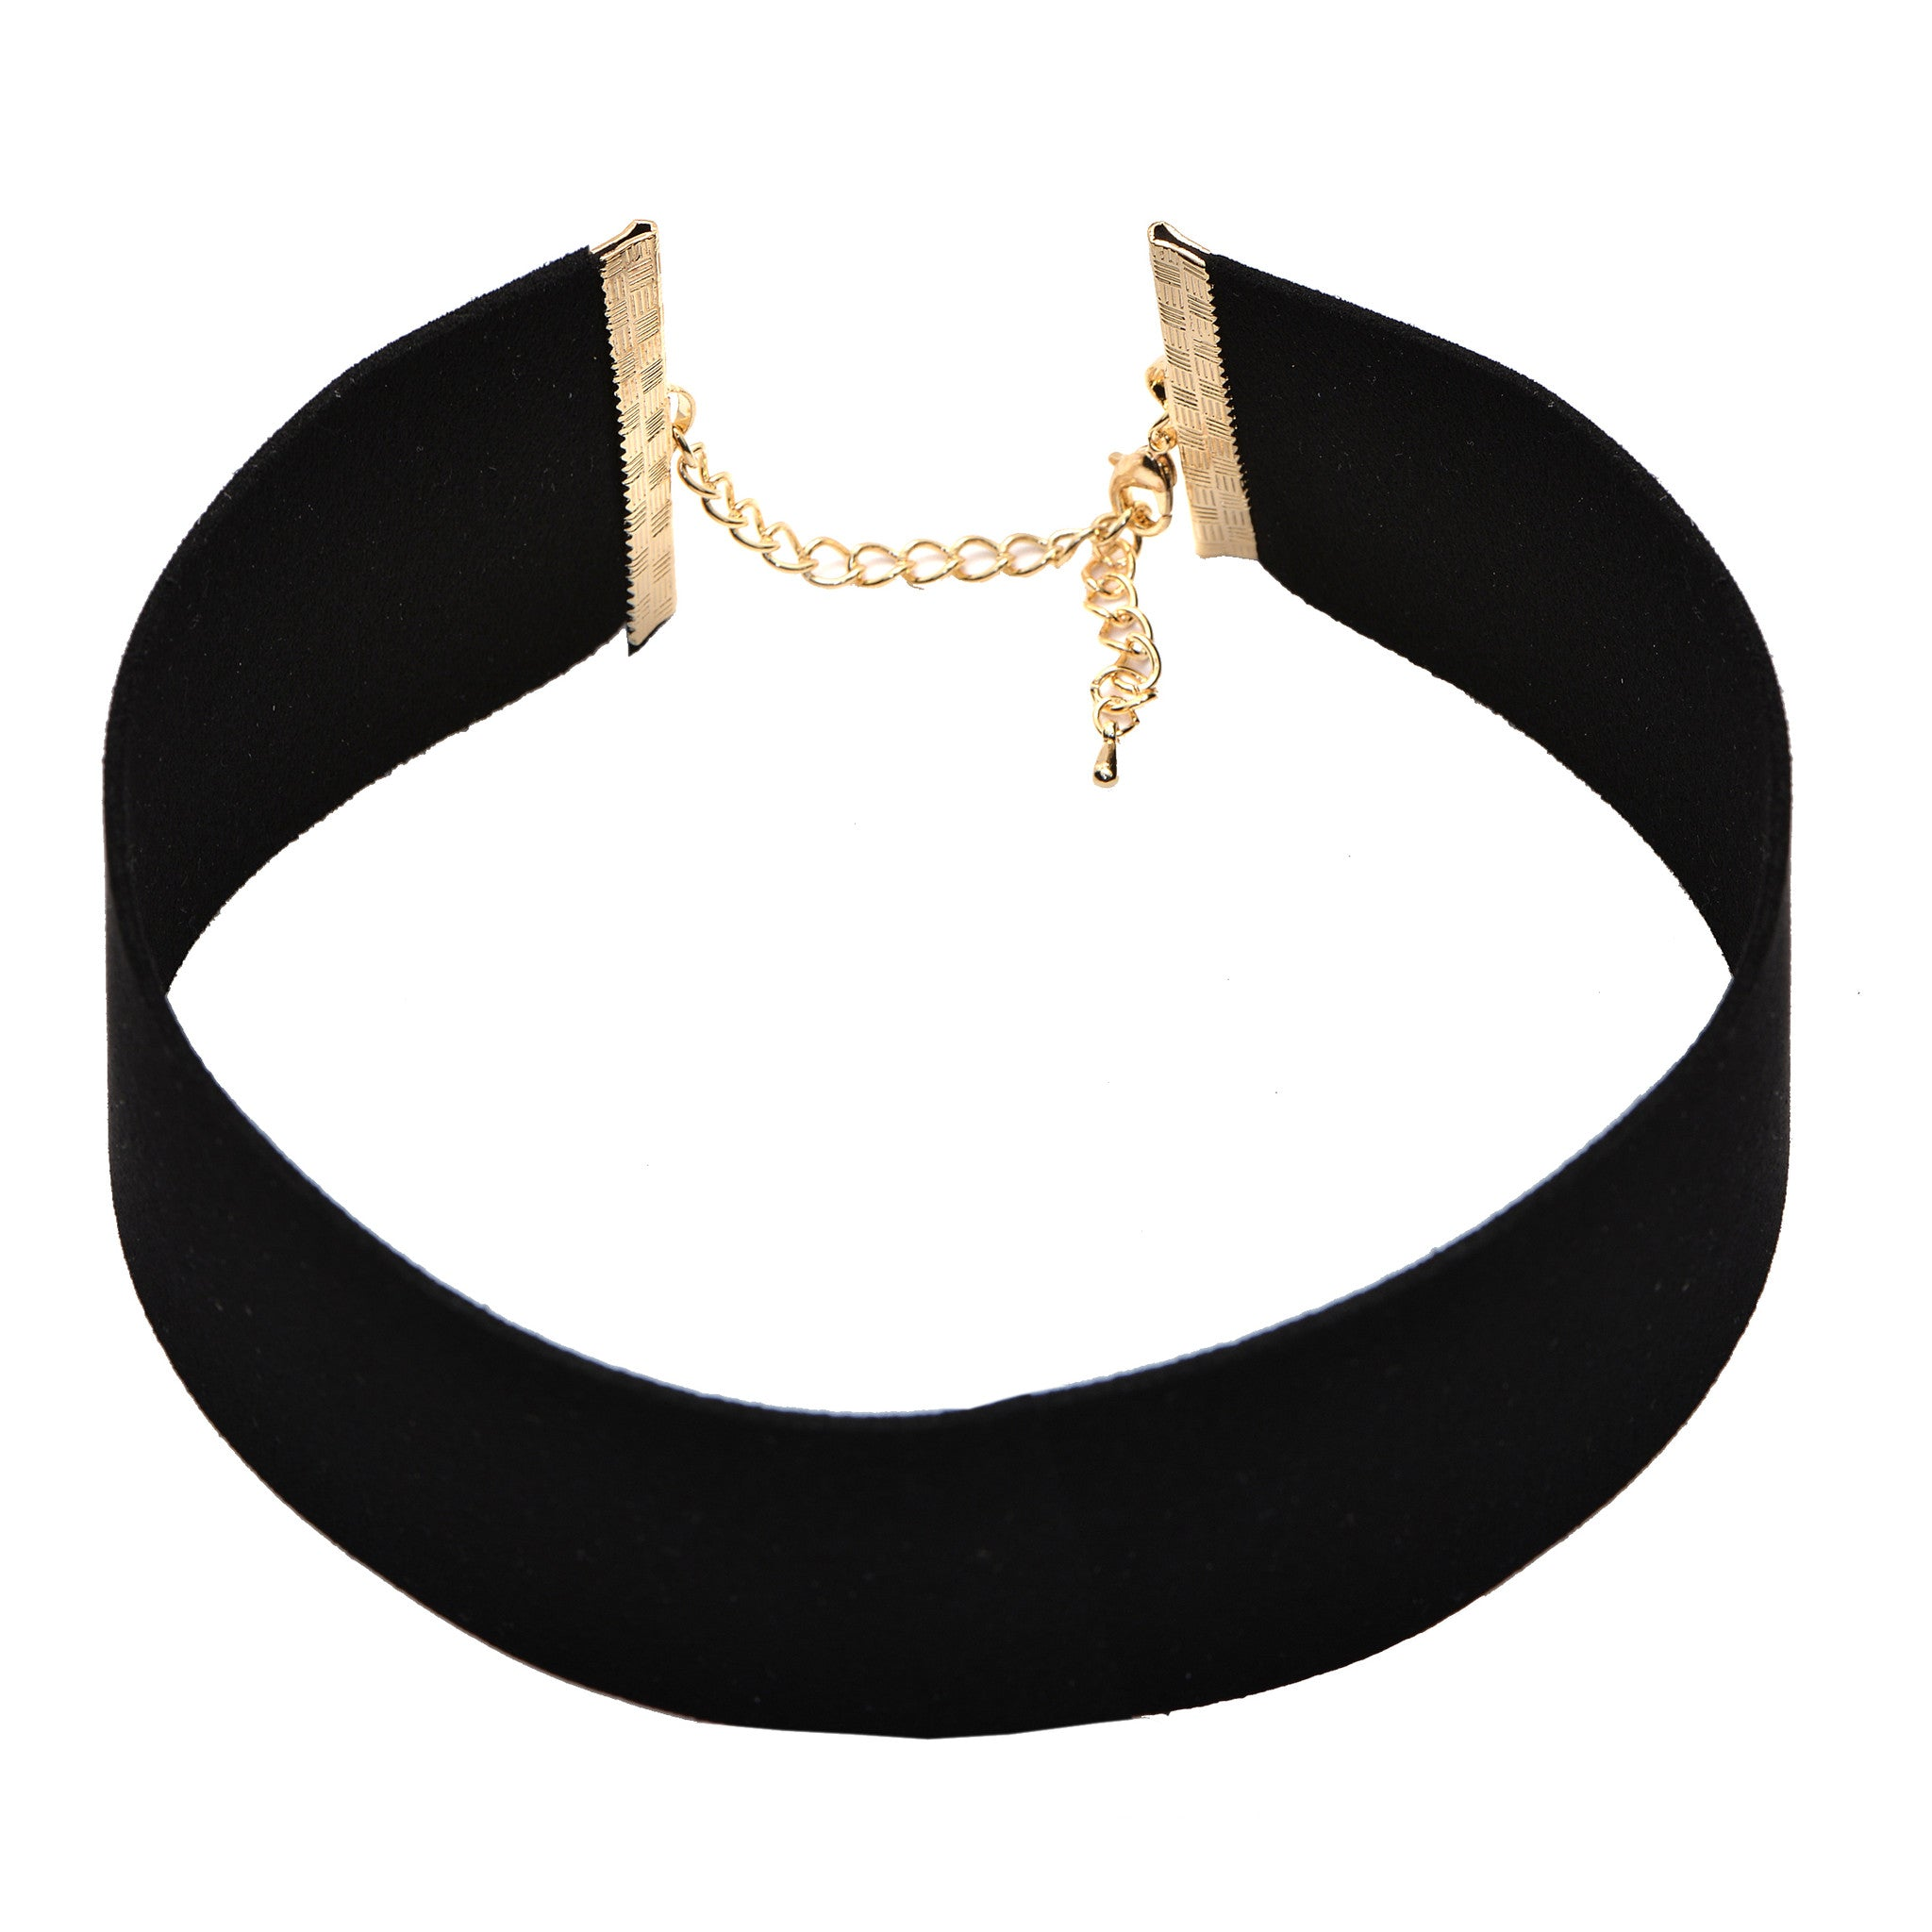 briwn products black necklace jewelry enjipai necklaces piece llc neck collections inaivu